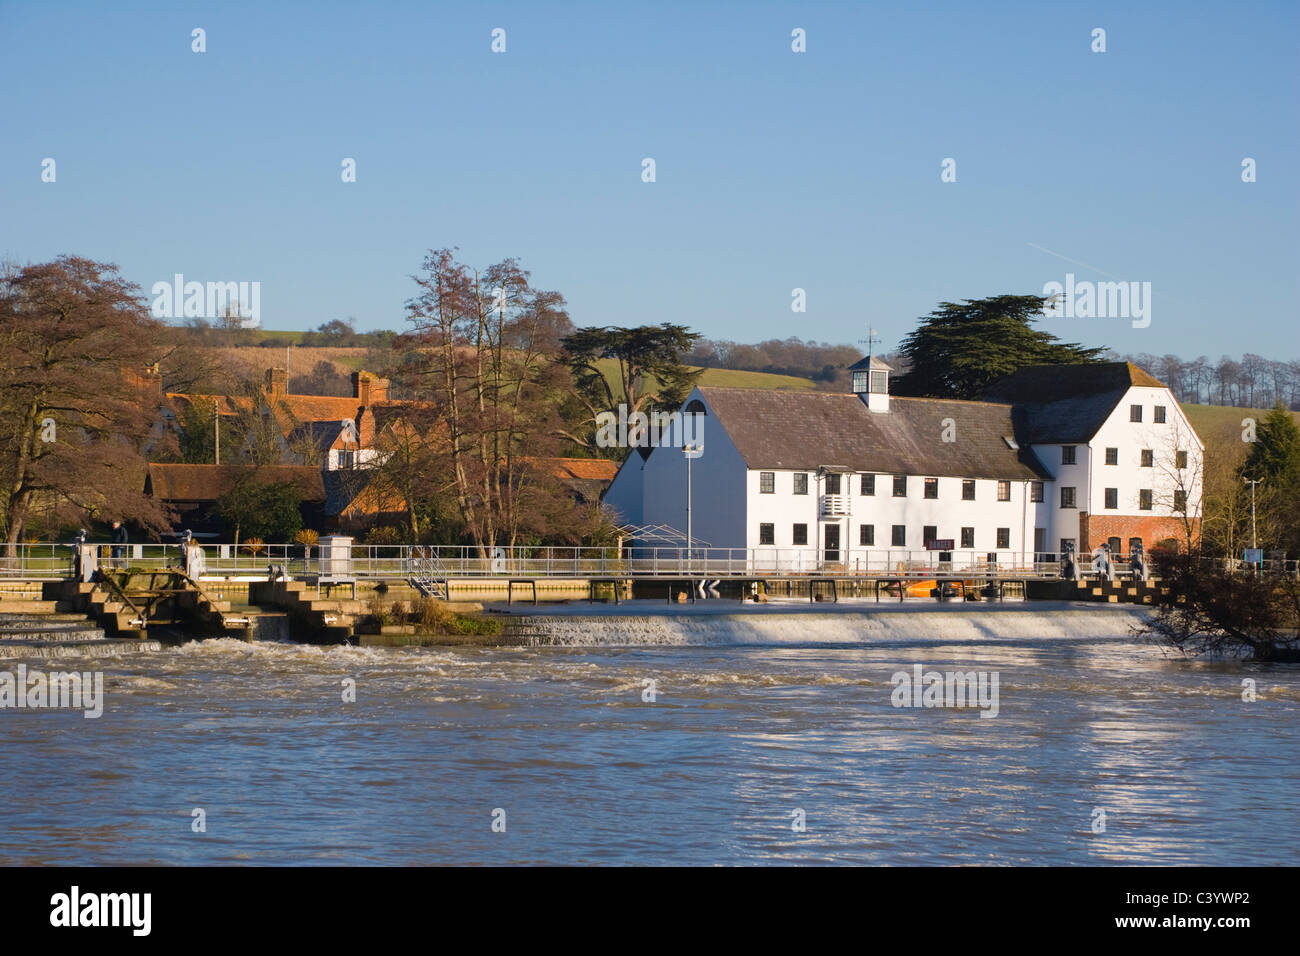 Hambleden Mill downstream of Henley-on-Thames. Oxfordshire. England. UK. - Stock Image